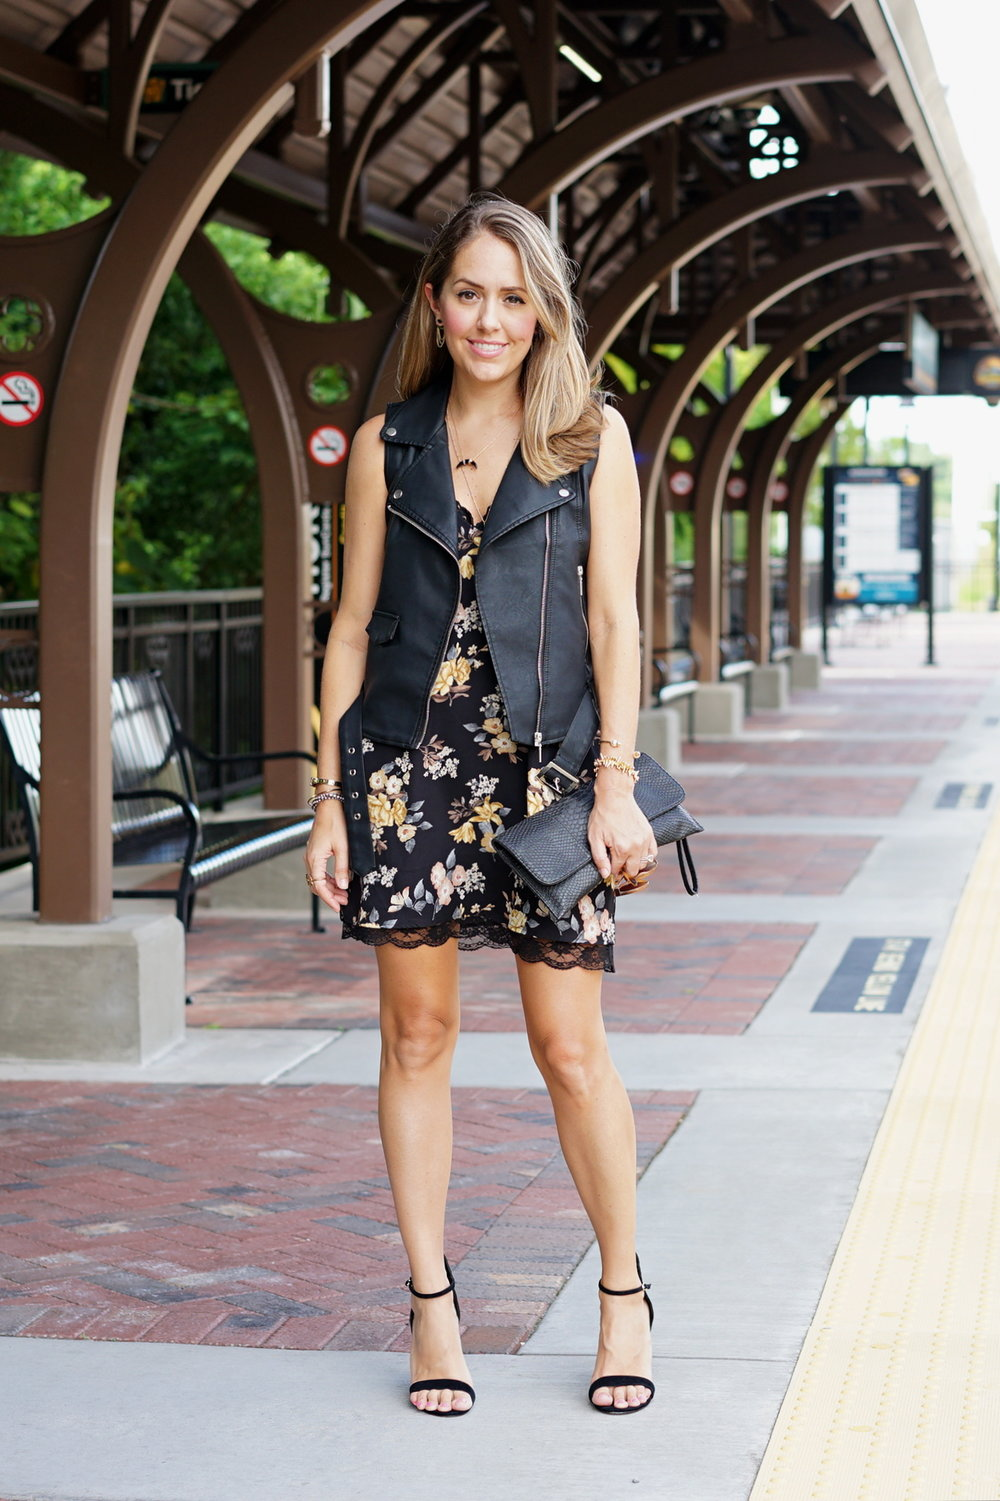 Black floral slip dress, black moto vest